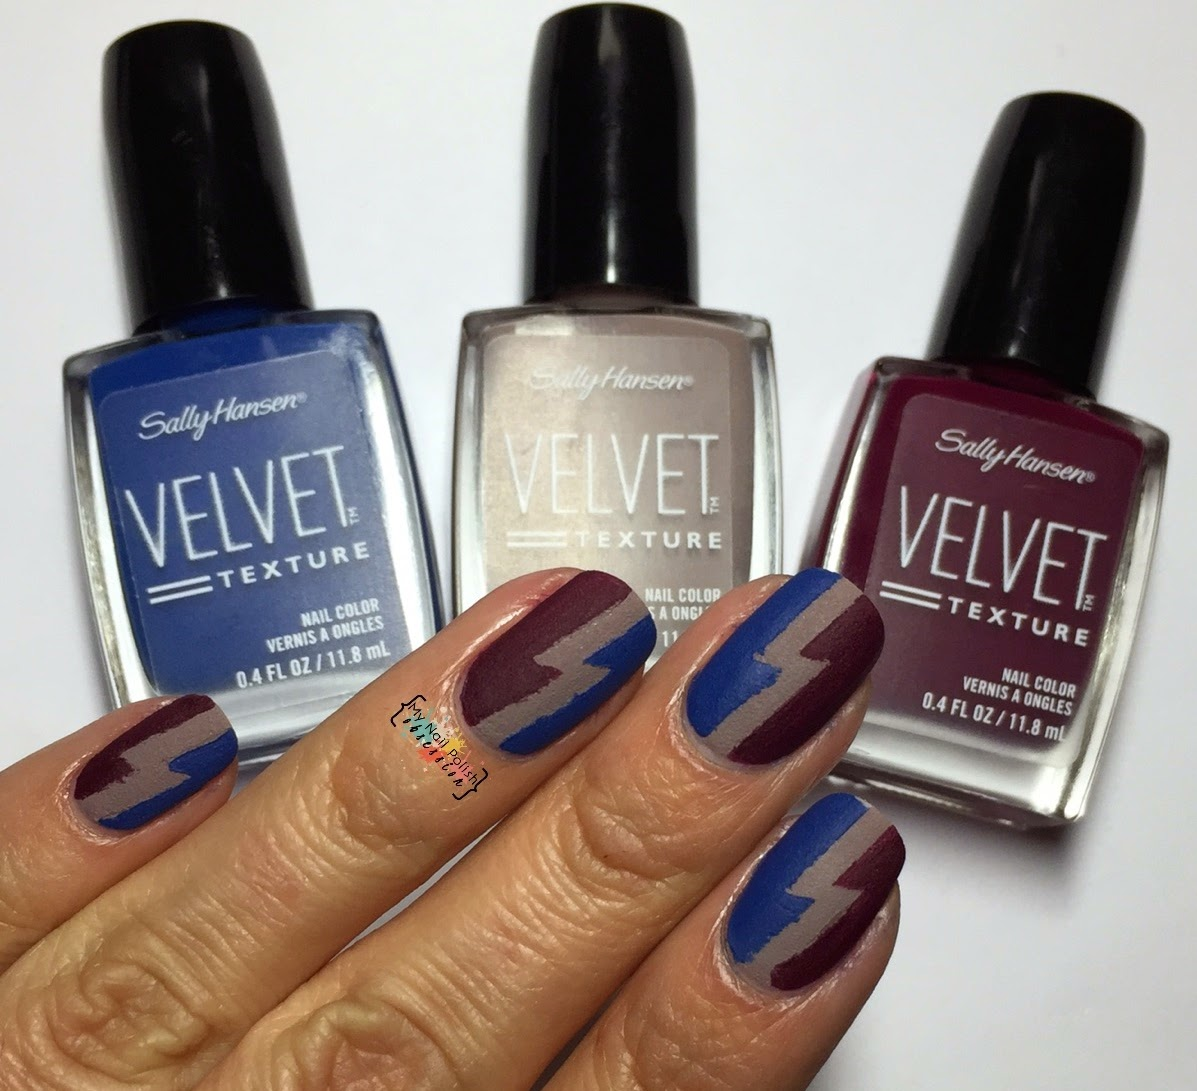 Sally Hansen Velvet Texture Lush, Lavish & Regal